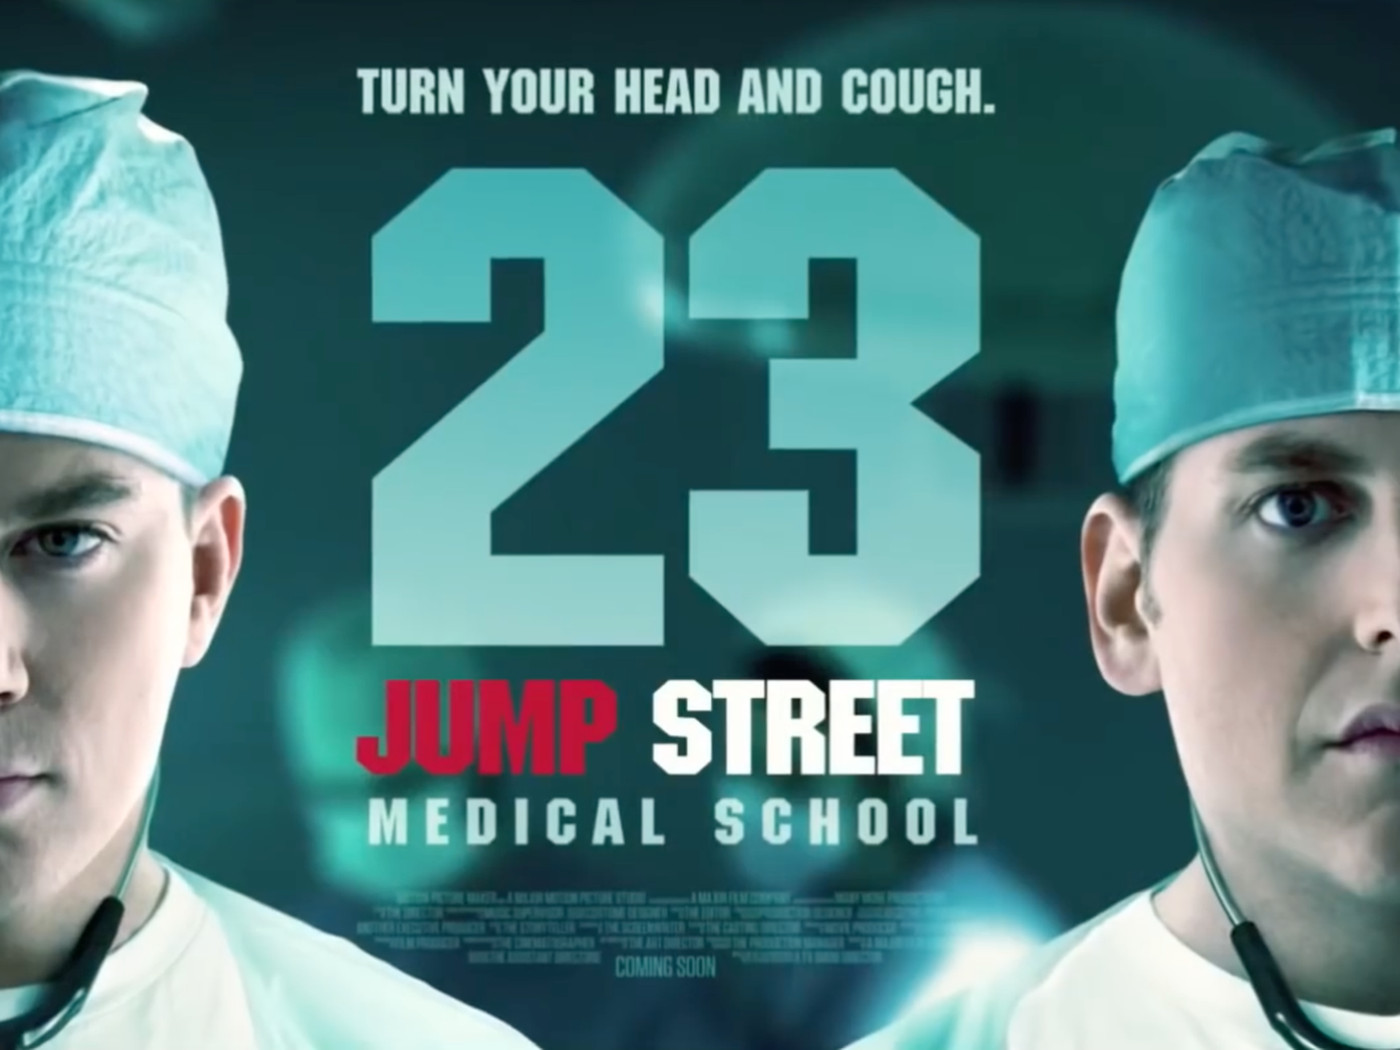 When is the next Jump Street movie coming up?